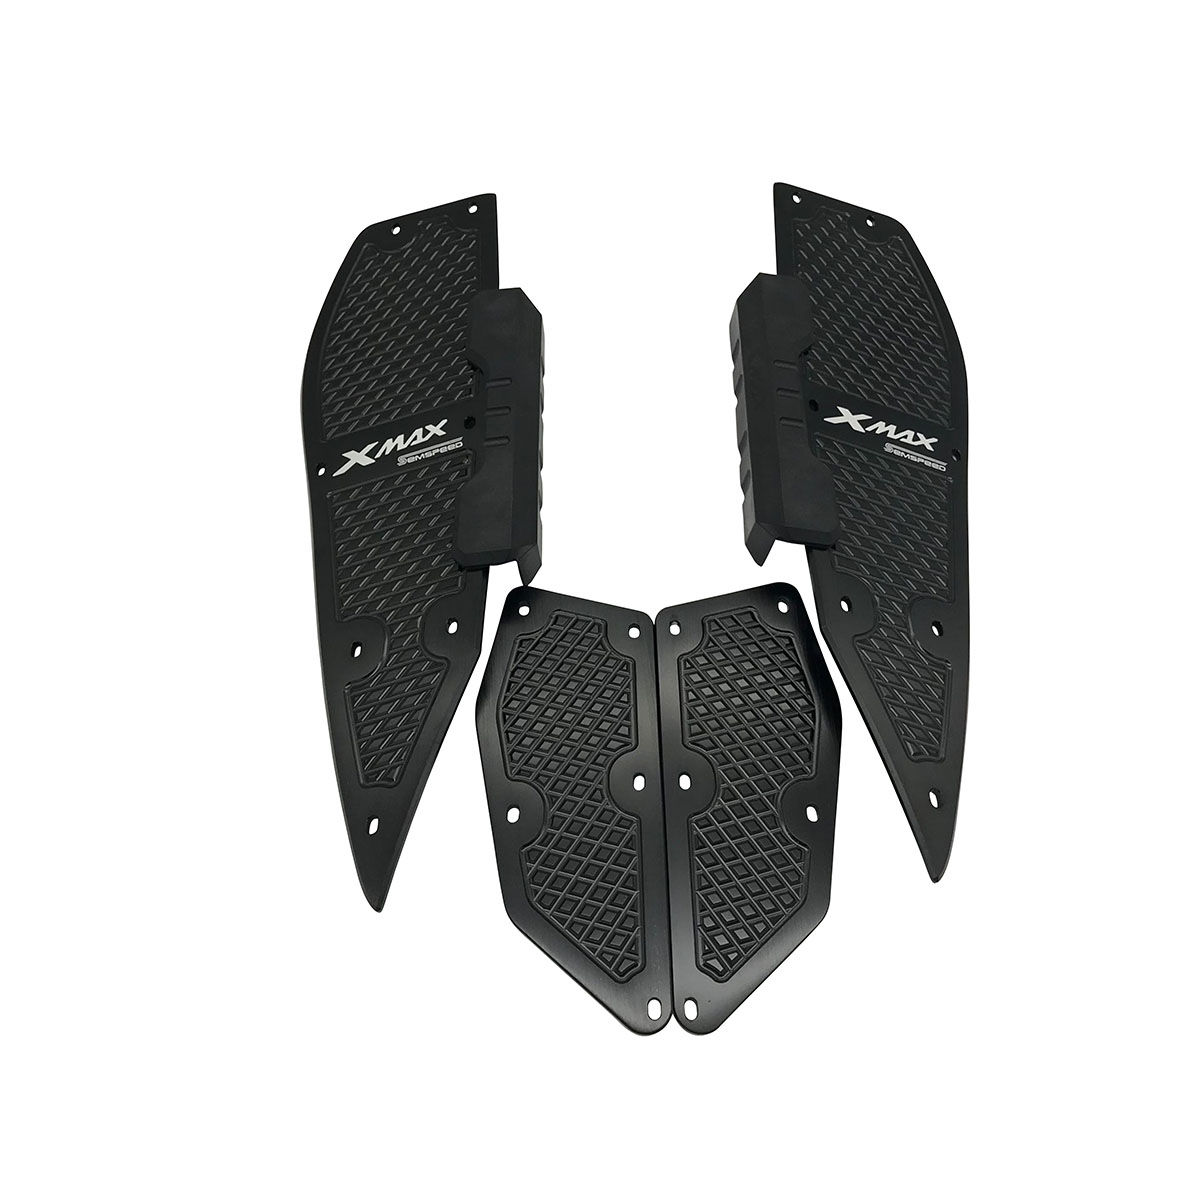 Modified Motorcycle X MAX Footrest Pedals For Yamaha XMAX300 XMAX400 XMAX250 XMAX125 2017-2019 Foot Pads Pedal Plate Accessories